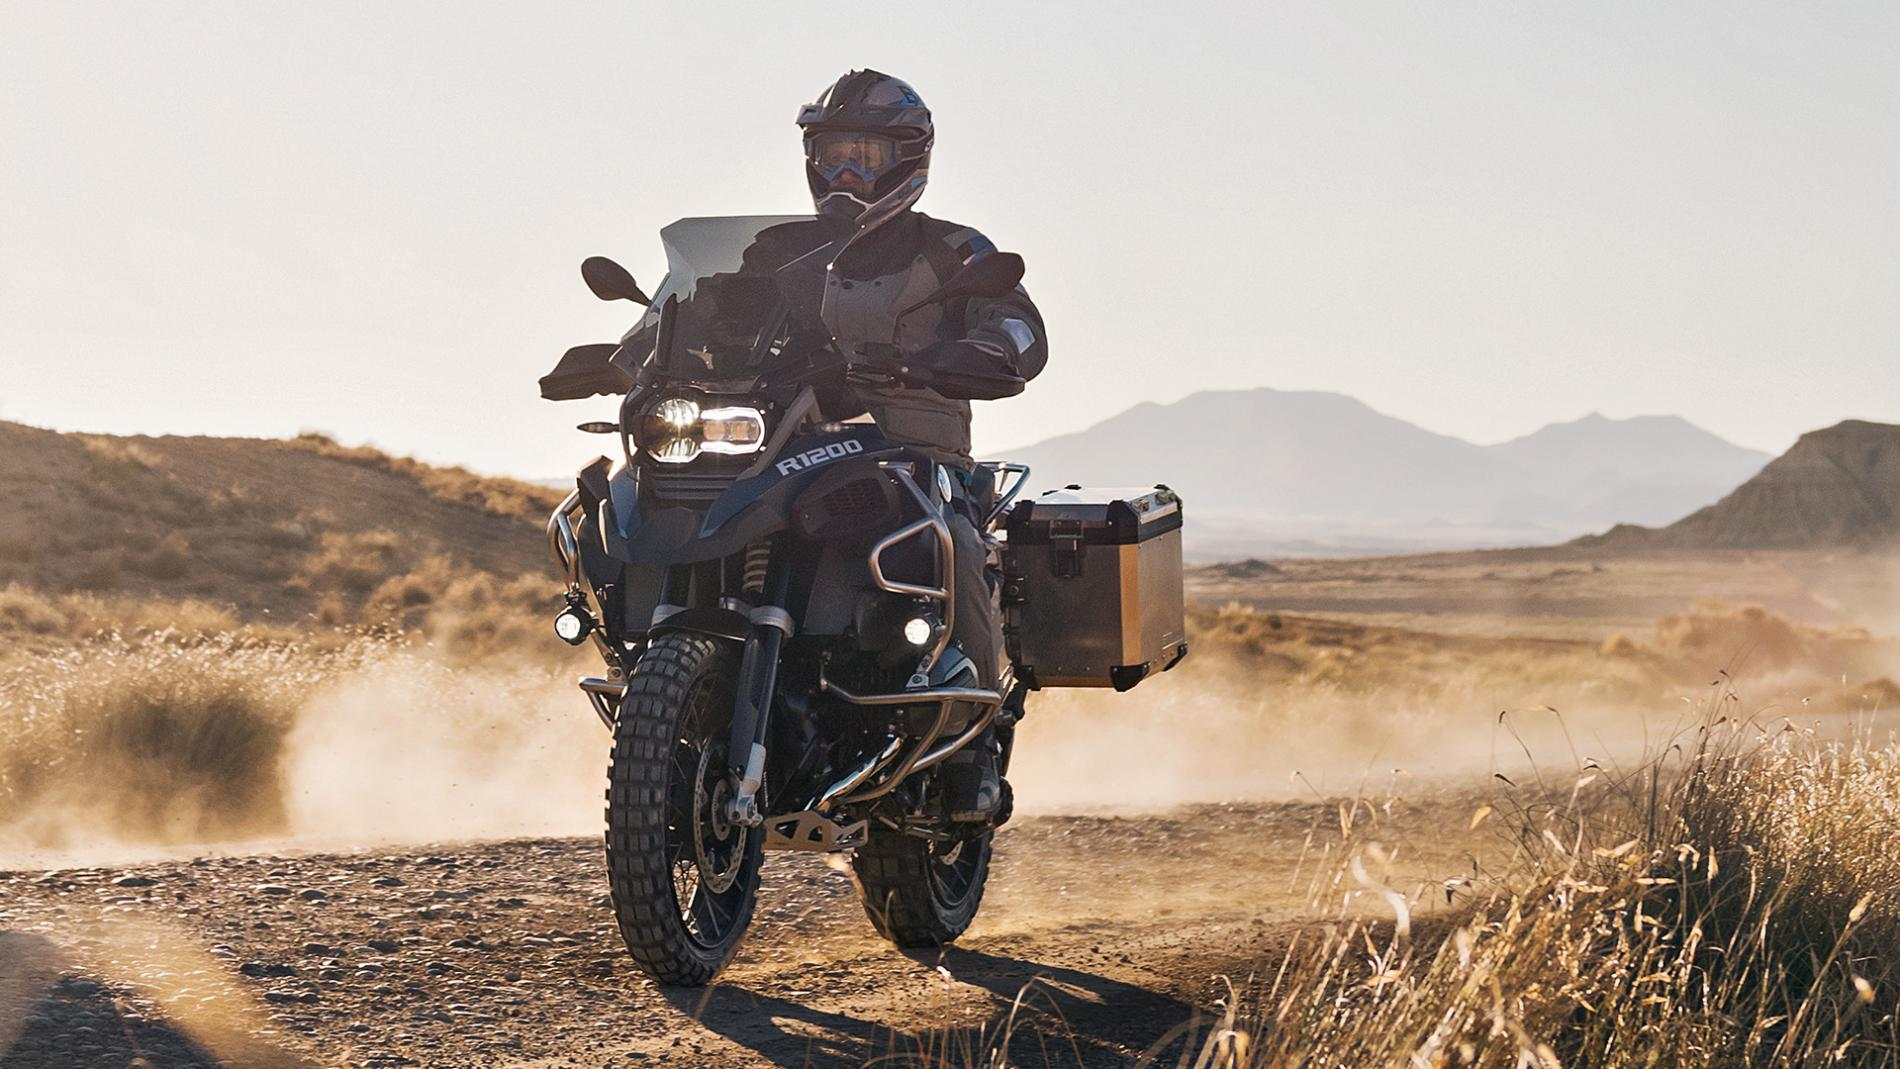 BMW R 1200 GS ADVENTURE - medium